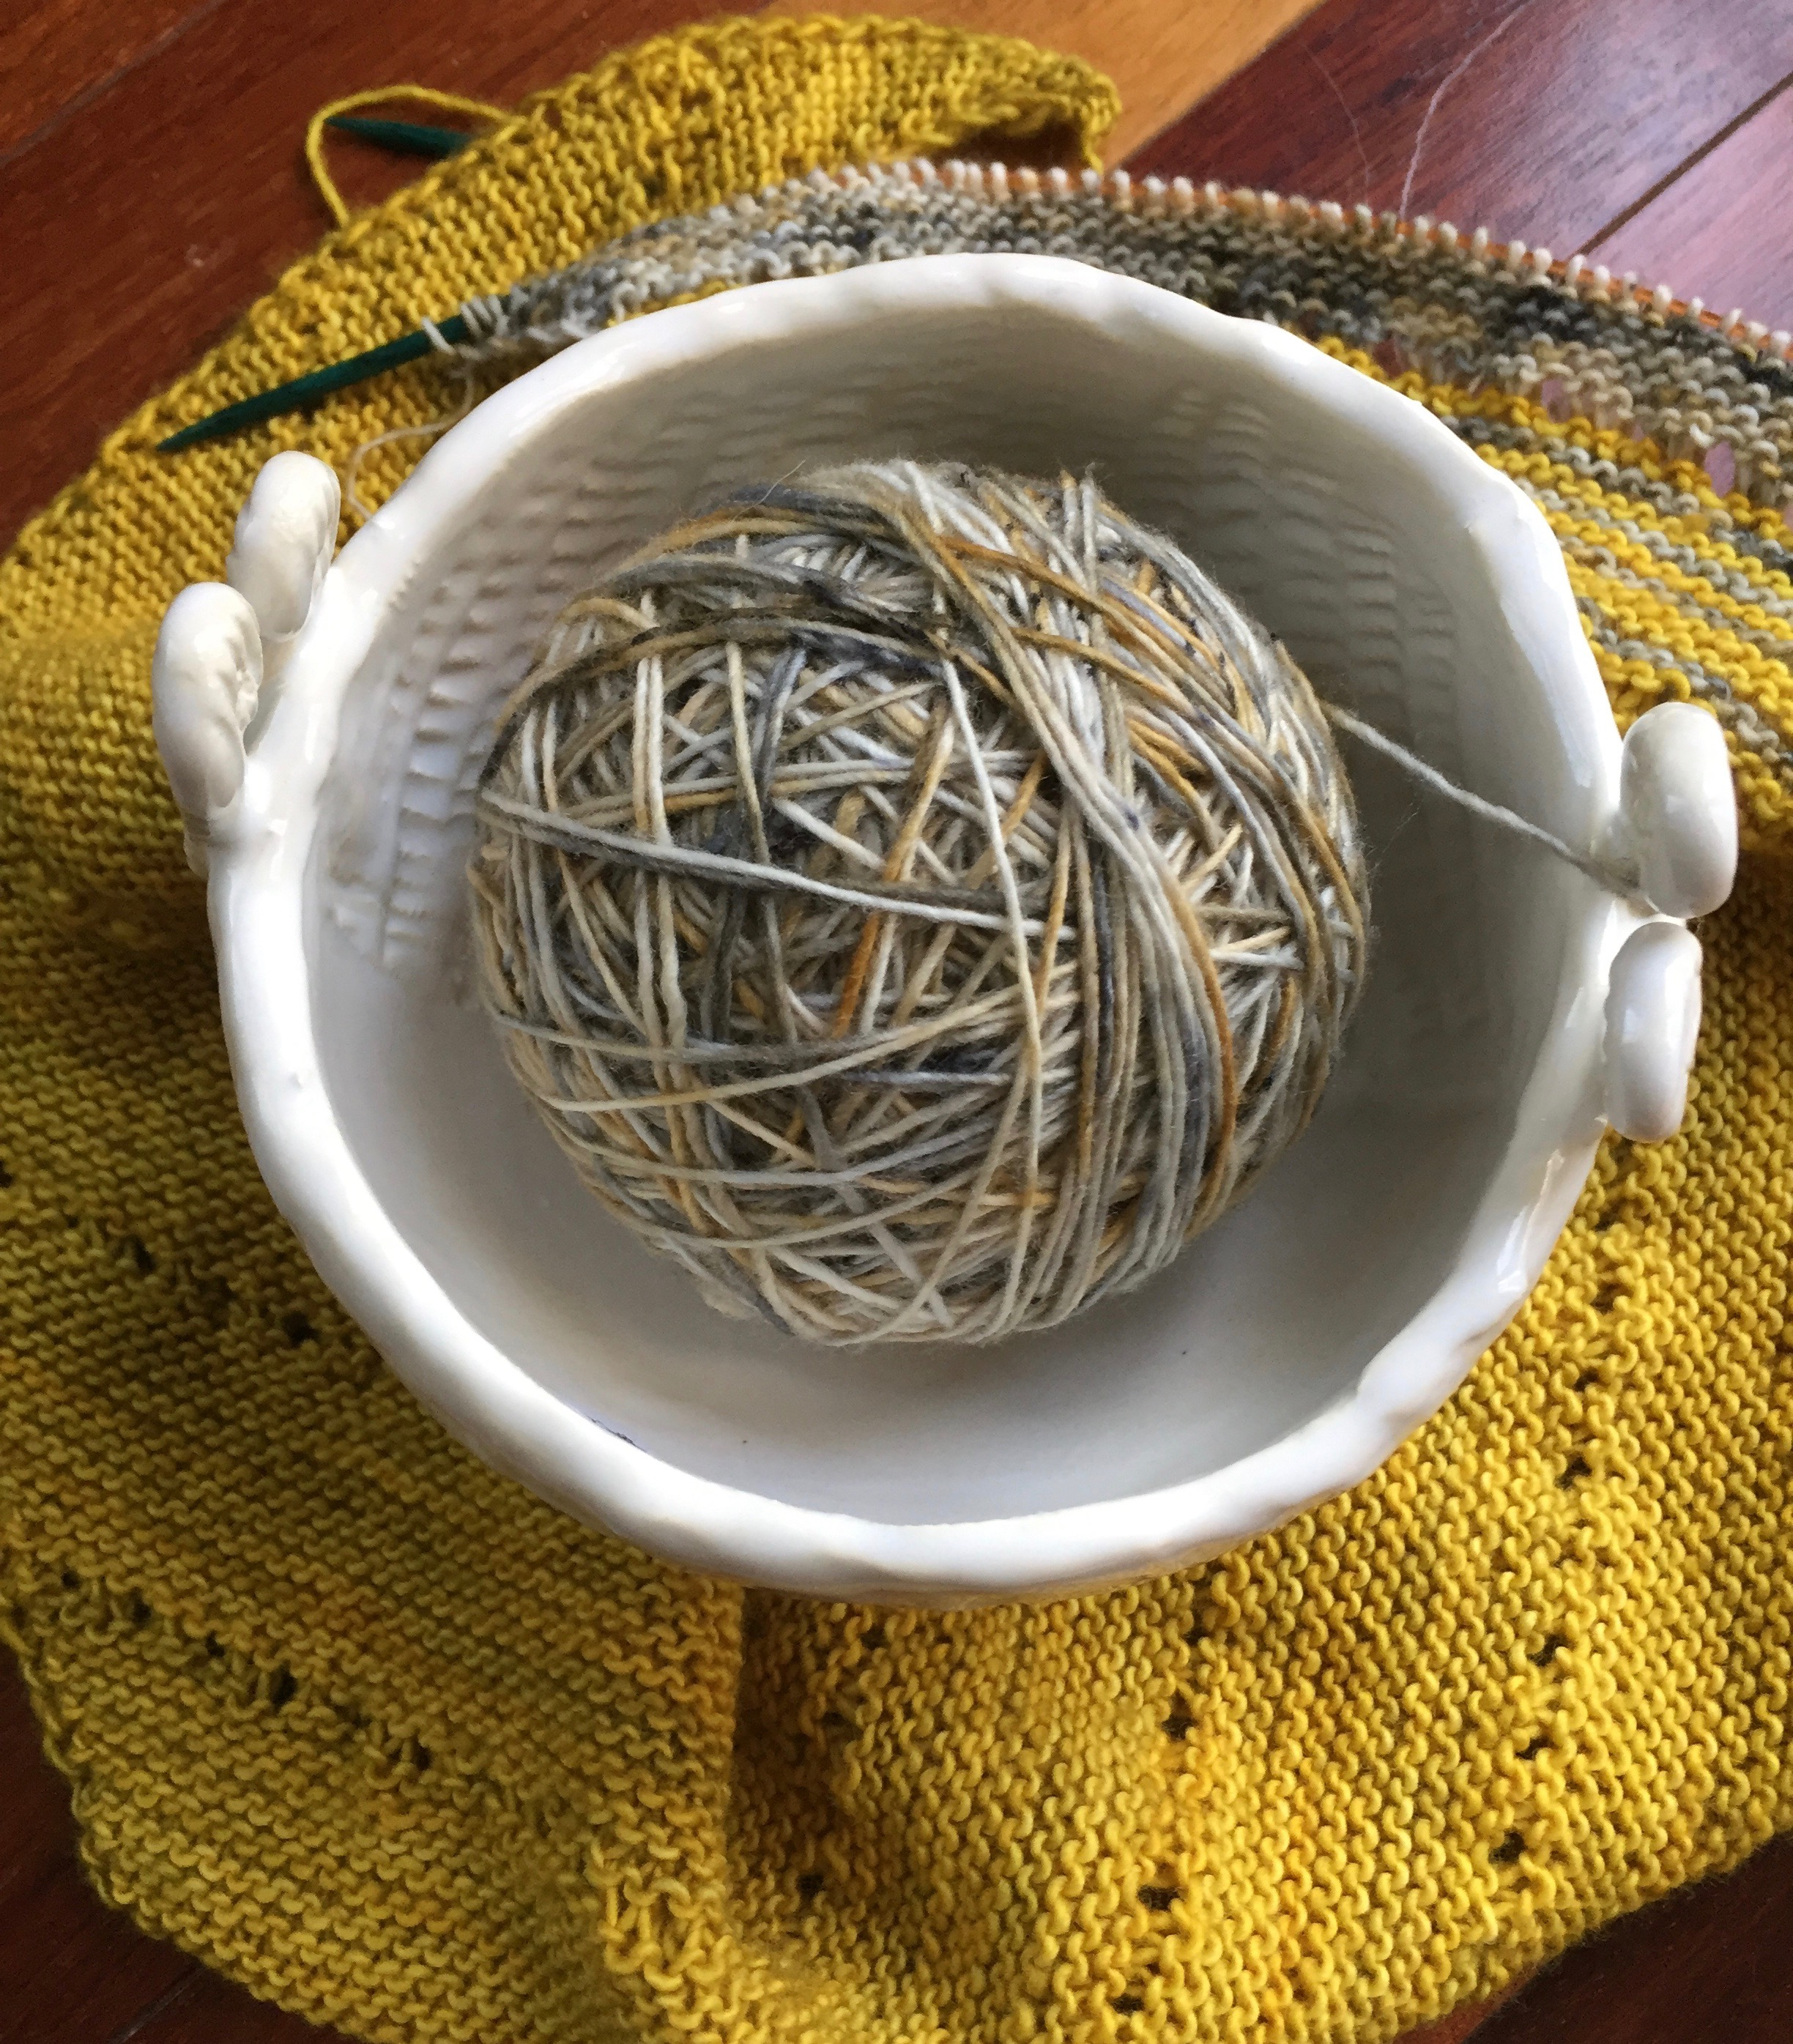 My current knitting project reflects the change of seasons. These fall-like colors for a warm winter wrap are what I'm stitching at the moment.